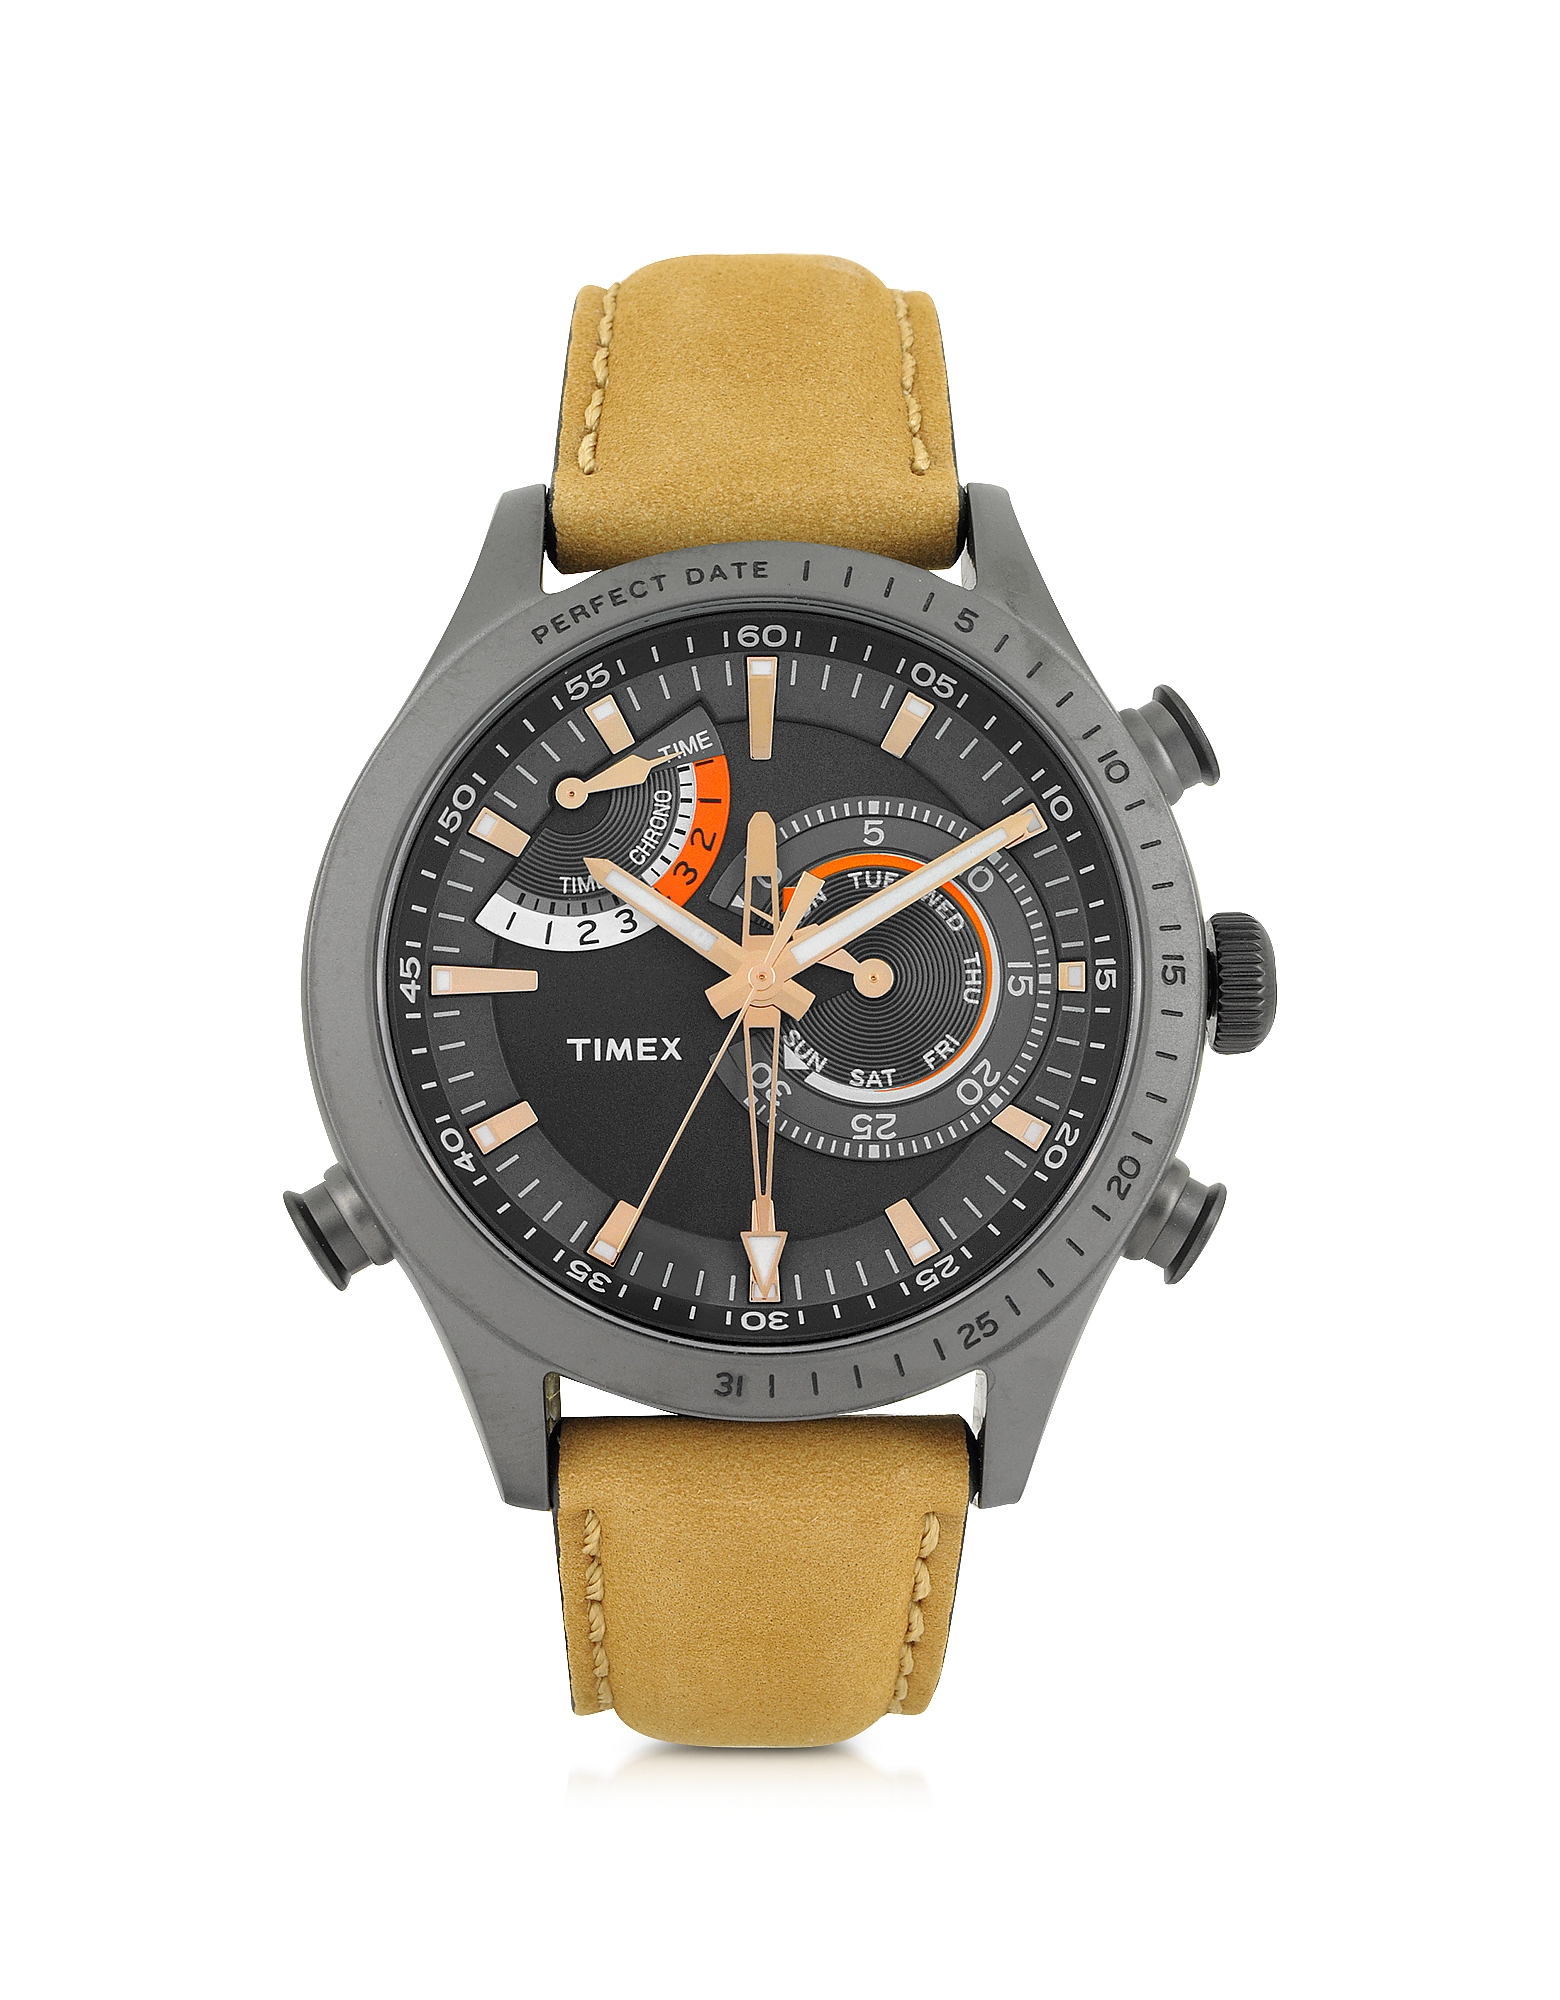 Timex Men's Watches, Chrono Timer Gray Stainless Steel Case and Tan Leather Strap Men's Watch